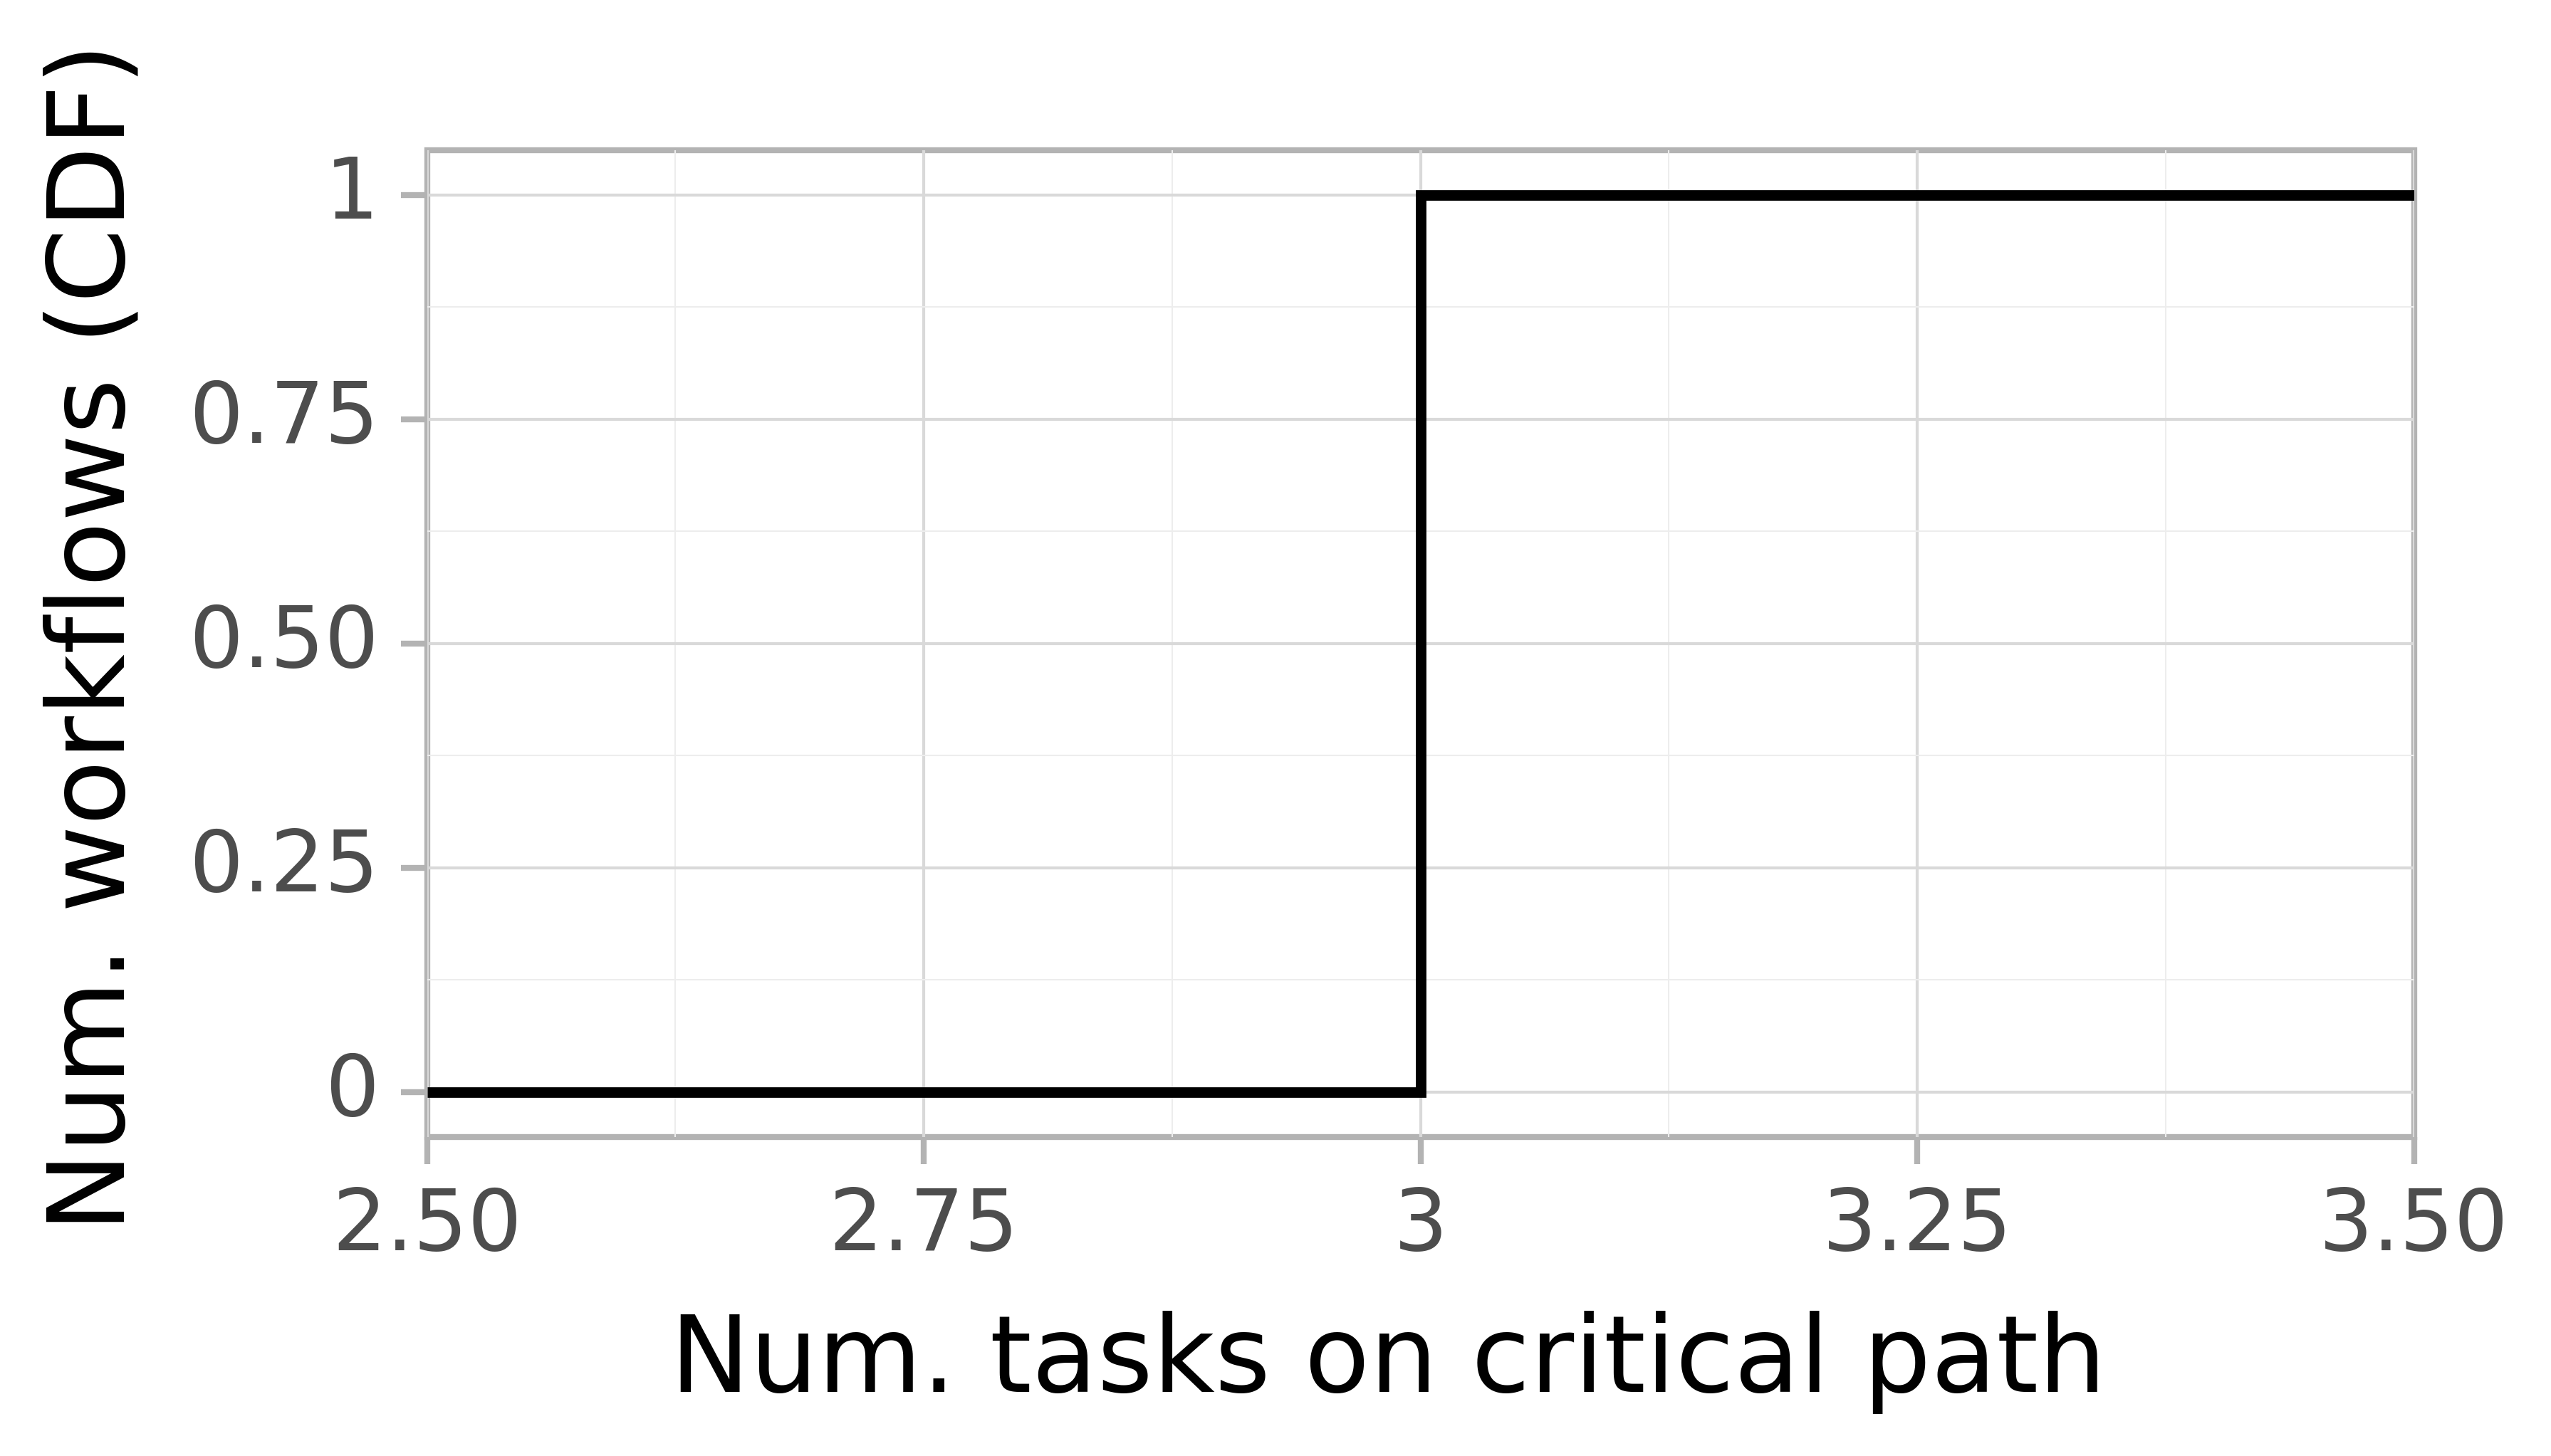 Job critical path task count graph for the askalon-new_ee30 trace.